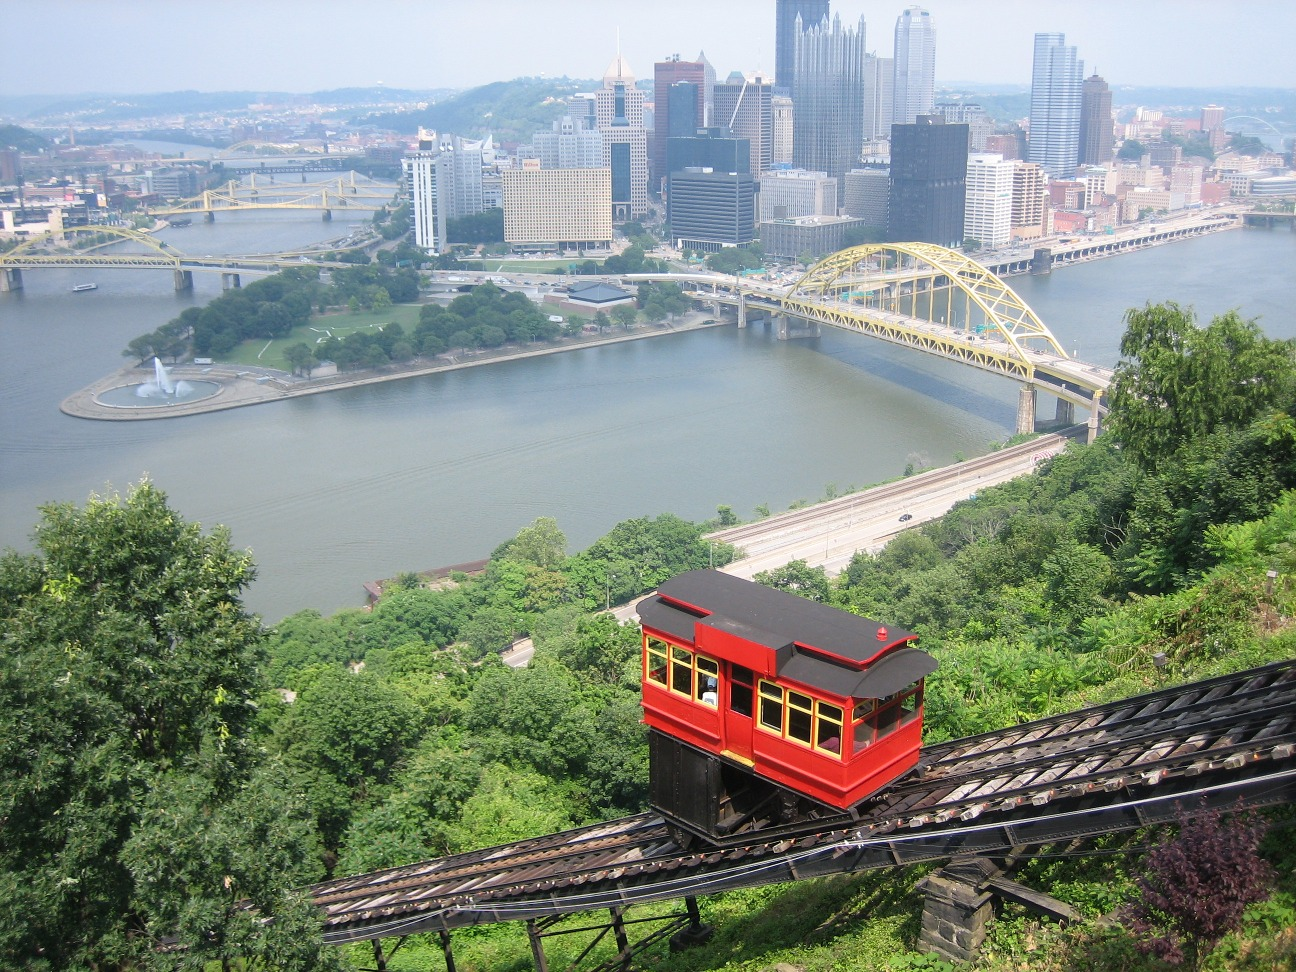 Duquesne_Incline_from_top.jpg